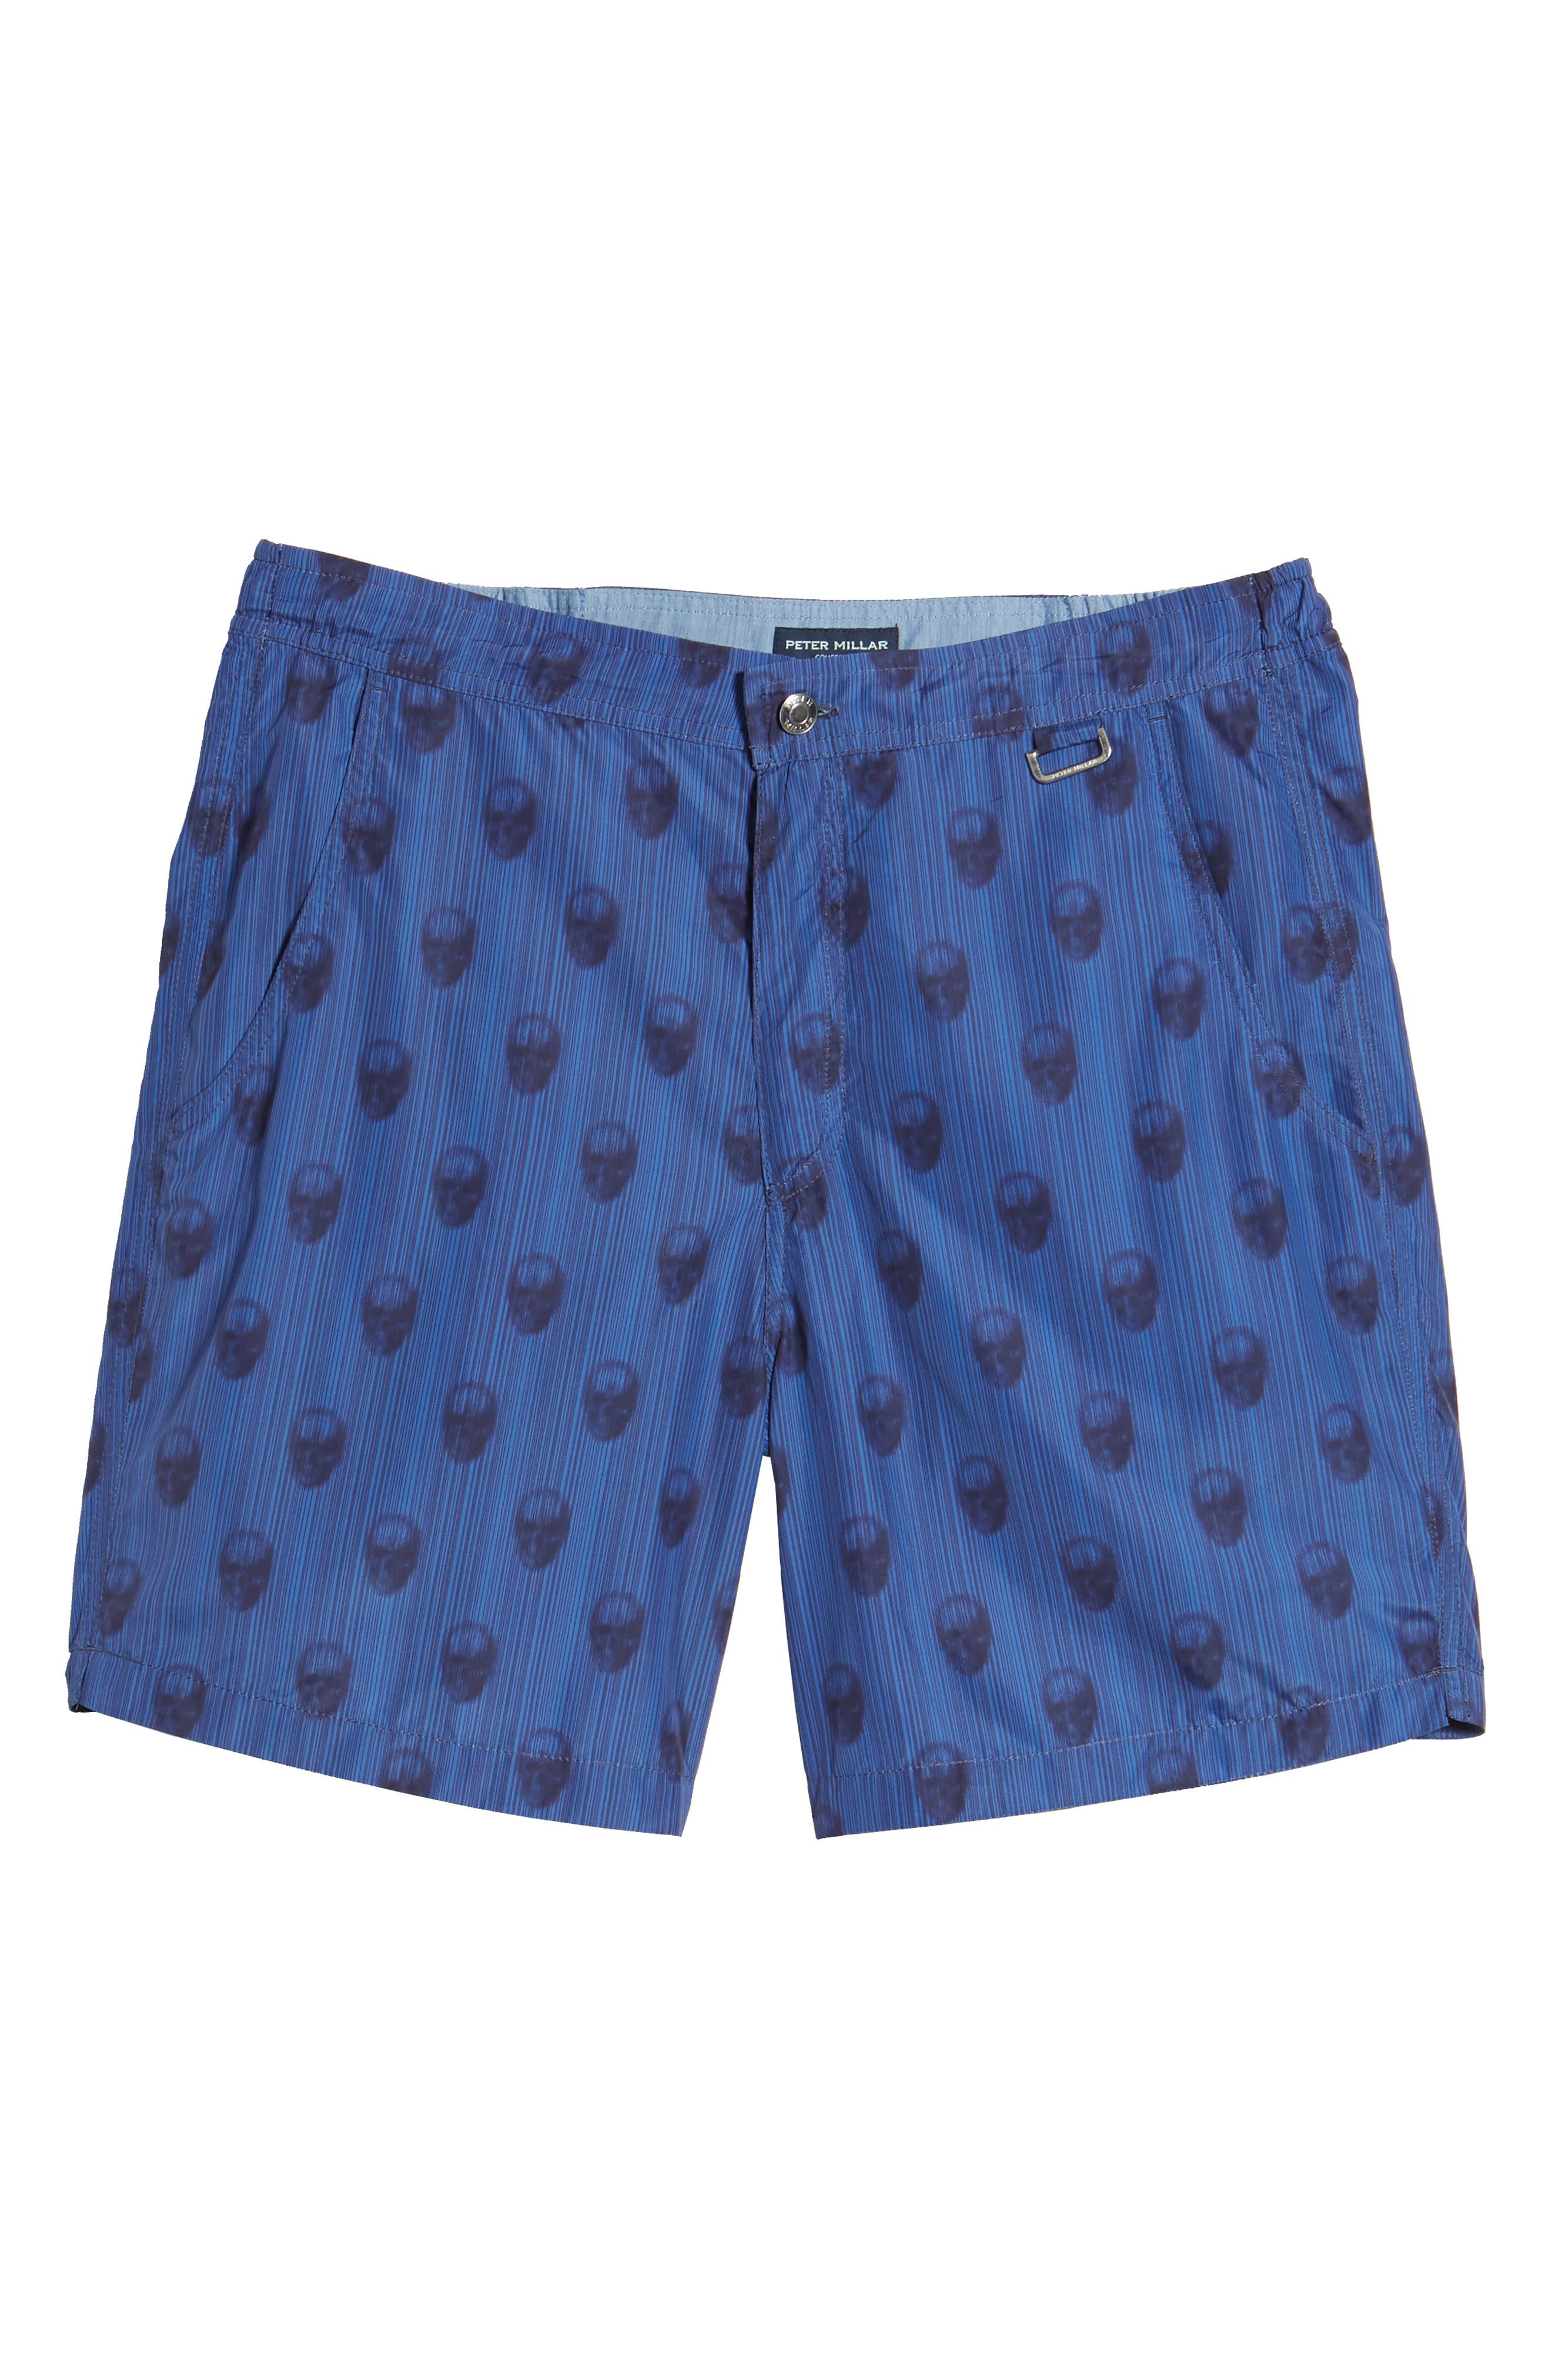 Peter Millar Black Jack's Bay Swim Trunks,                             Alternate thumbnail 6, color,                             440